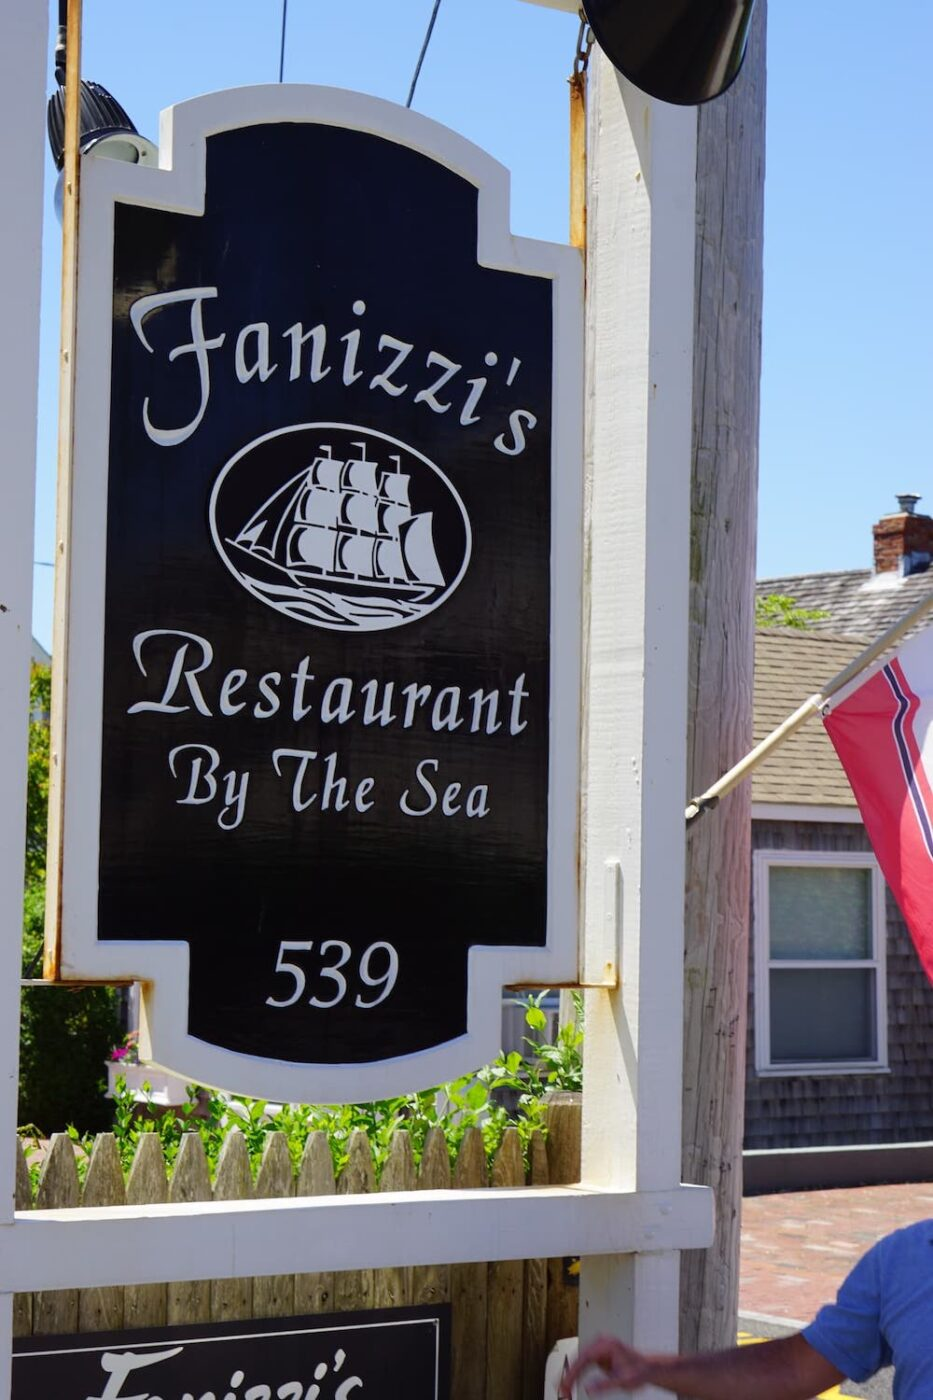 Fanizzi's Restaurant by the Sea